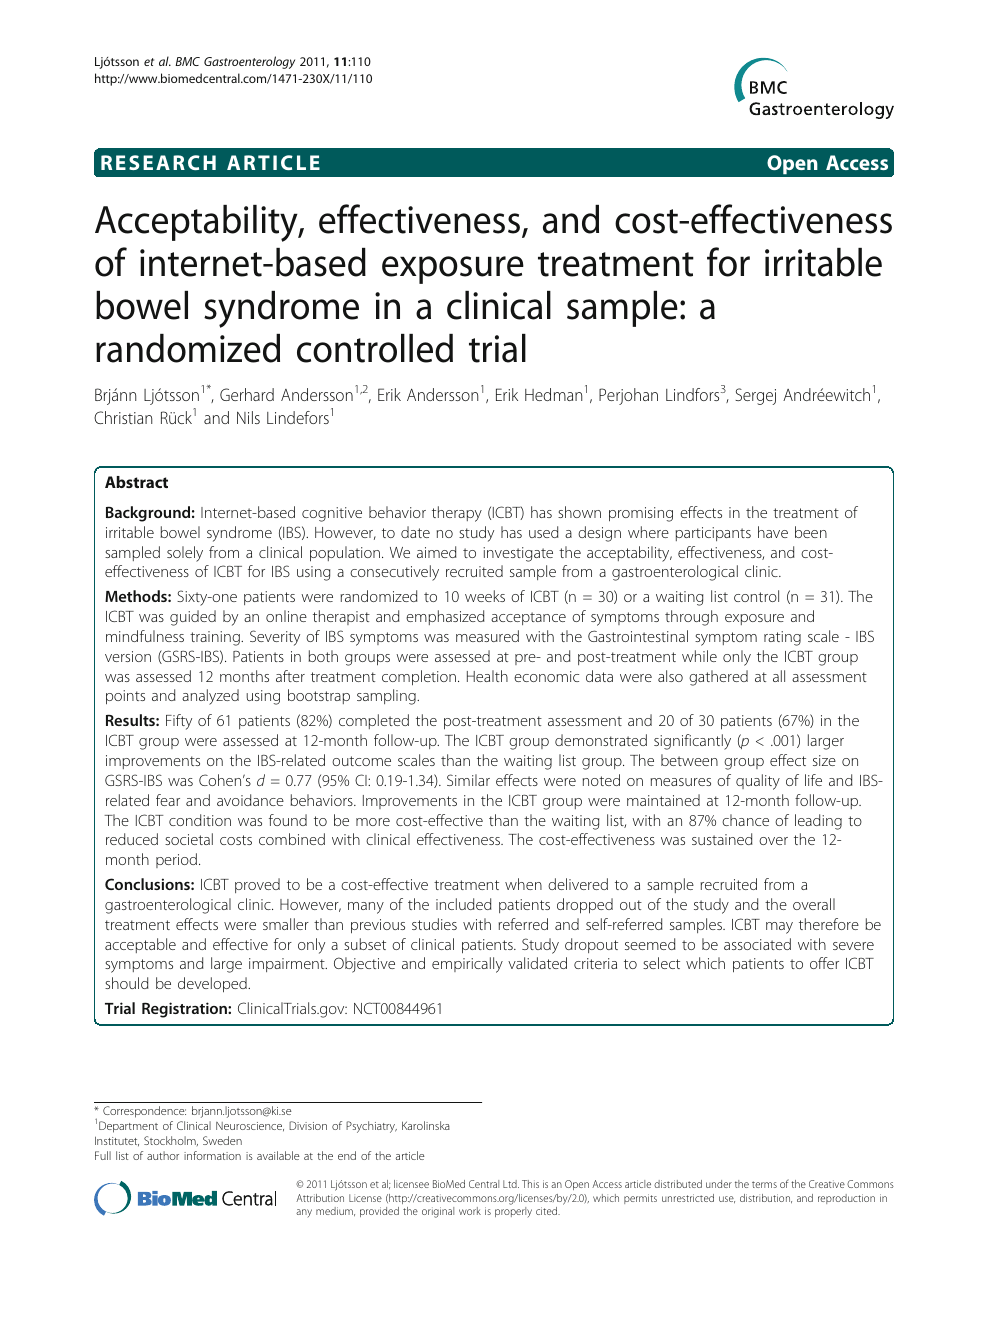 Acceptability, effectiveness, and cost-effectiveness of